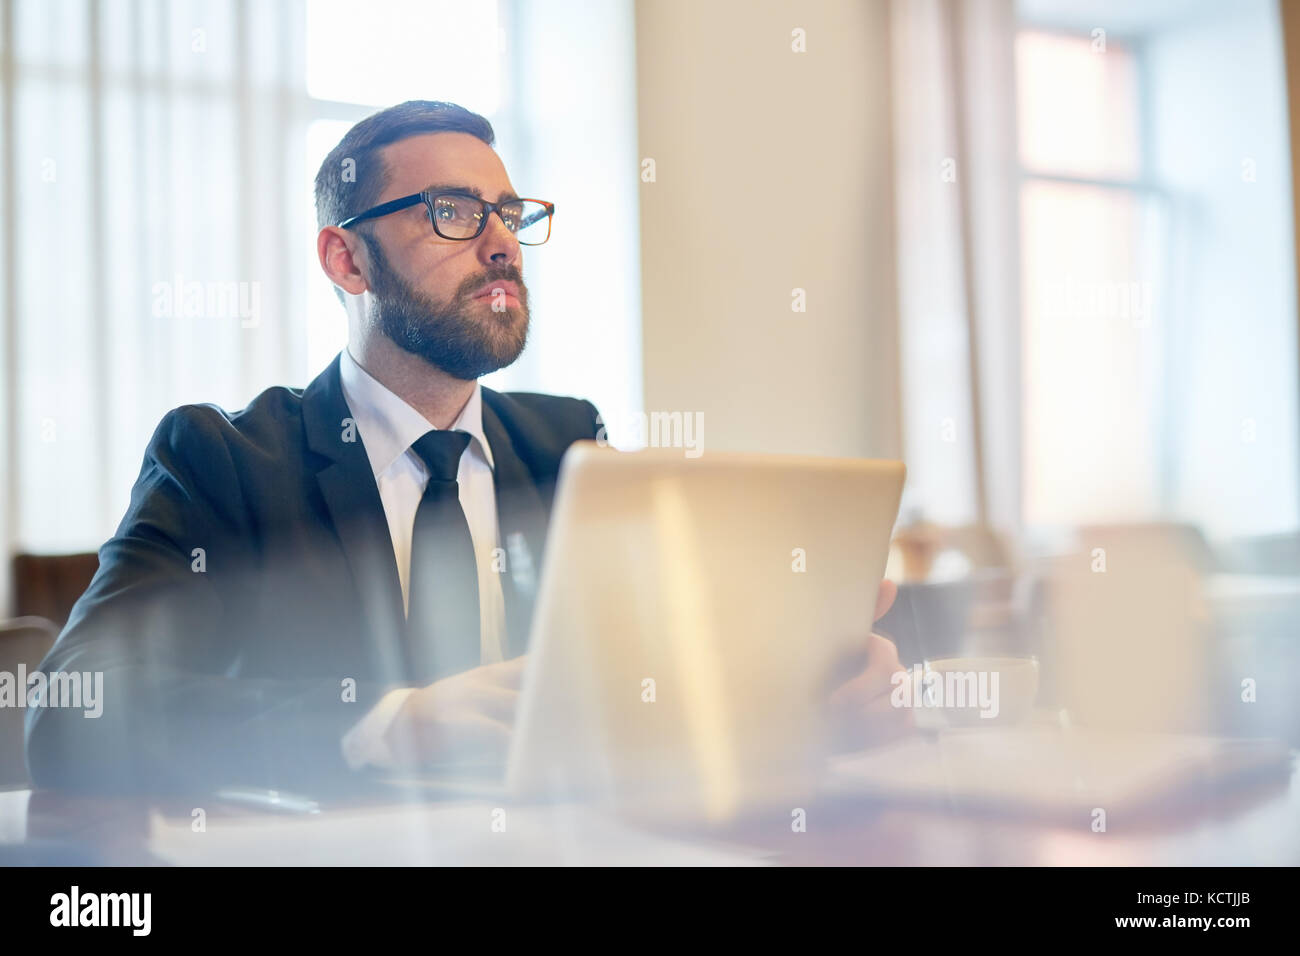 Pensive analyst - Stock Image